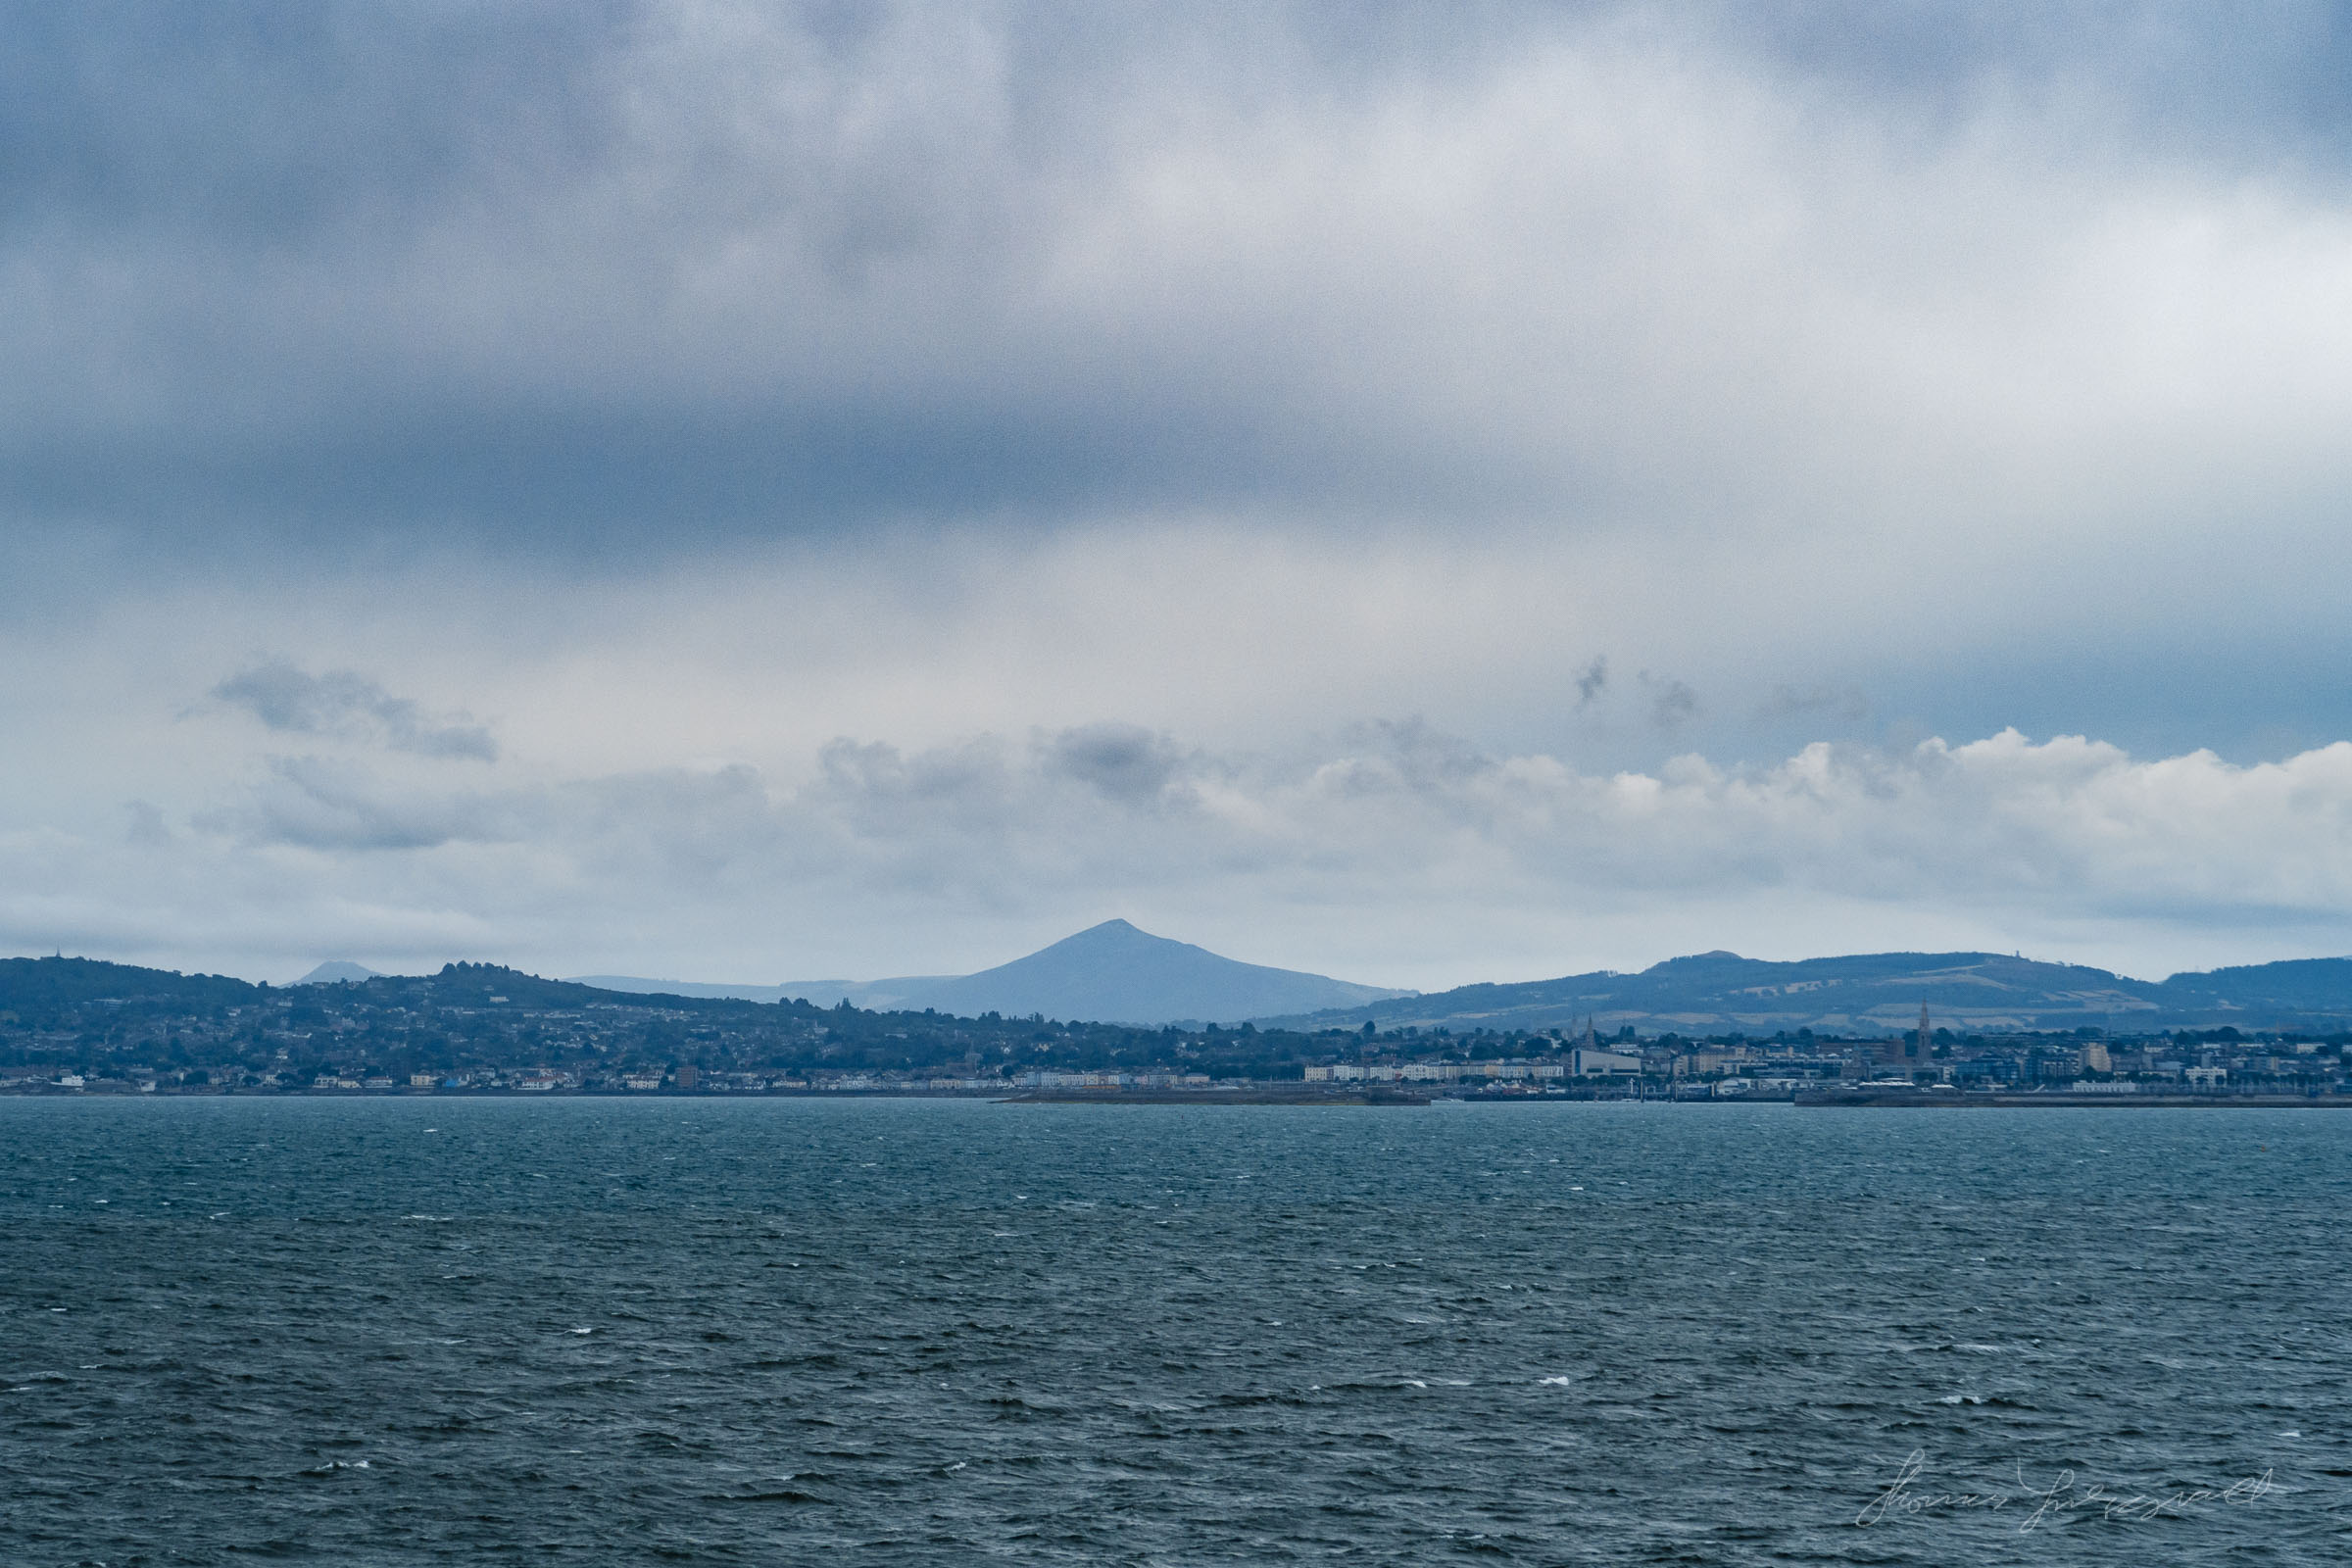 Wicklow's Sugar Loaf as seen from the Sea